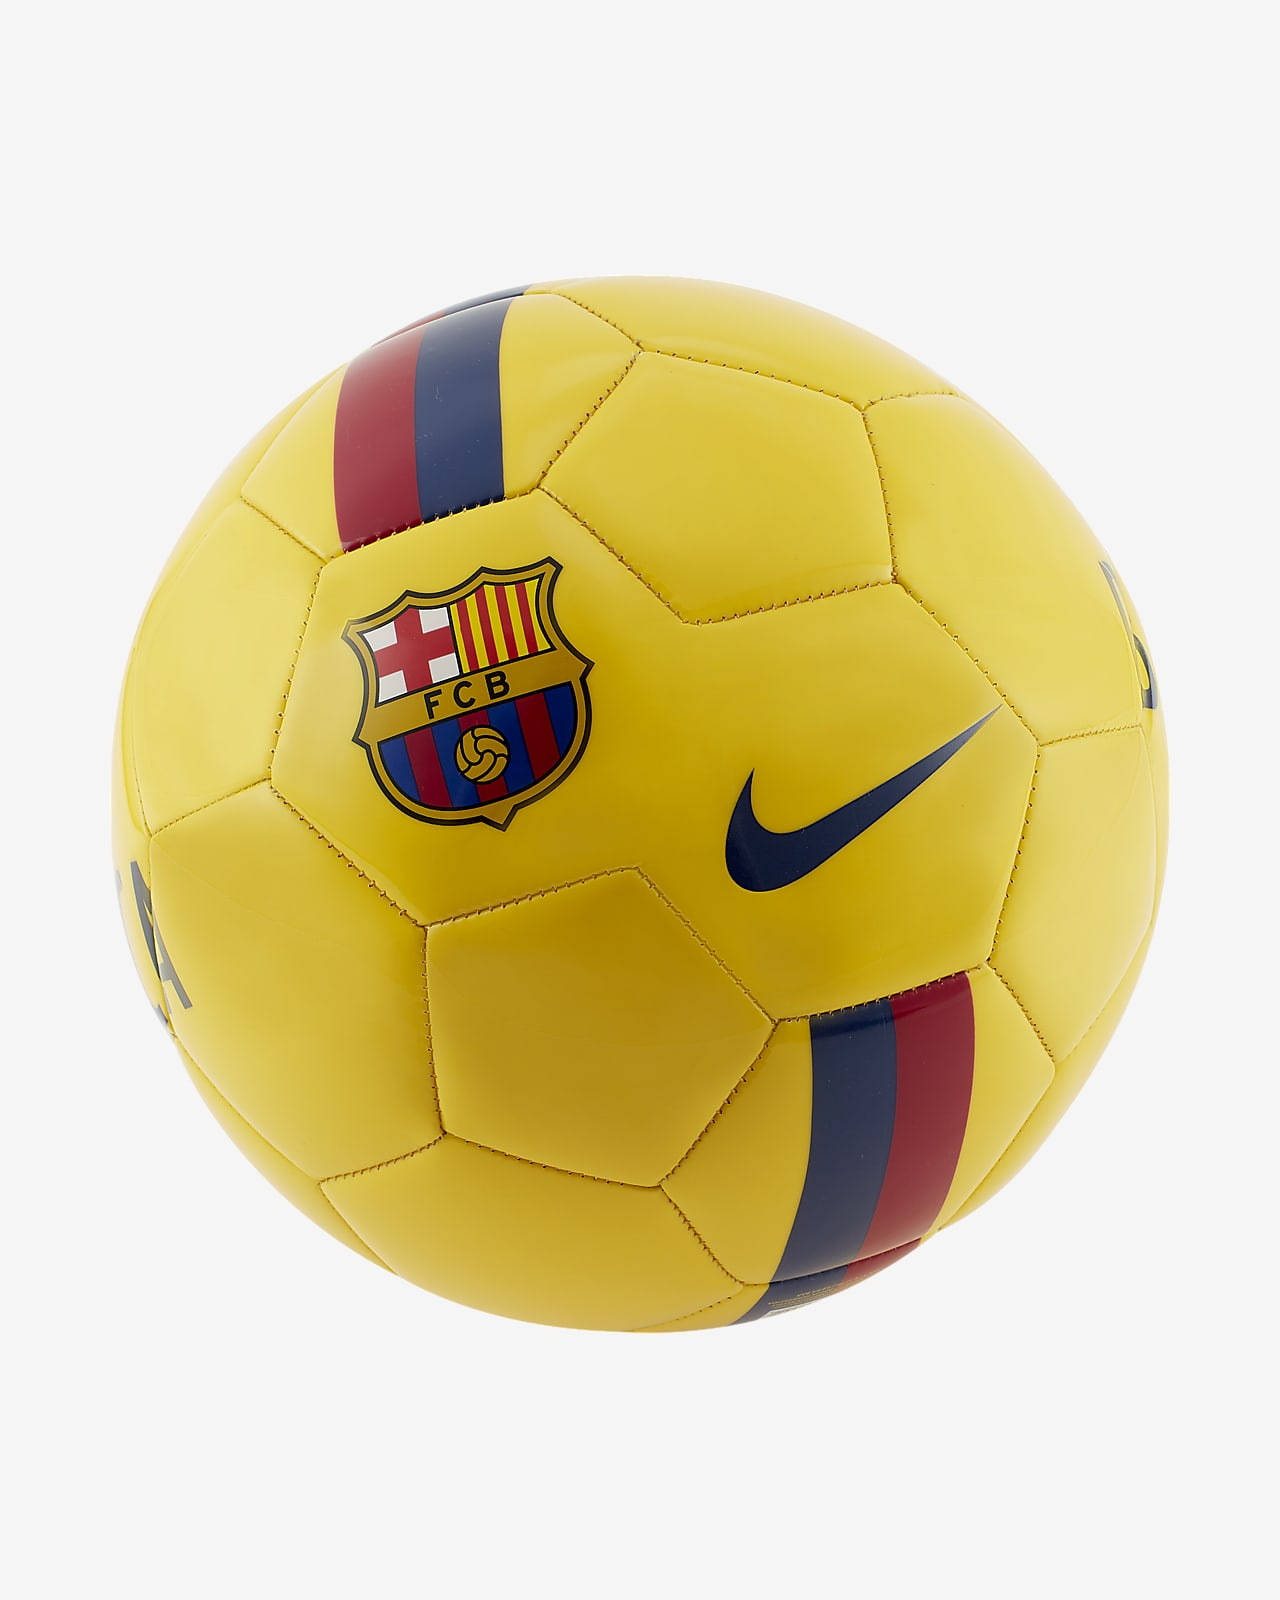 FC Barcelona Supporters Football